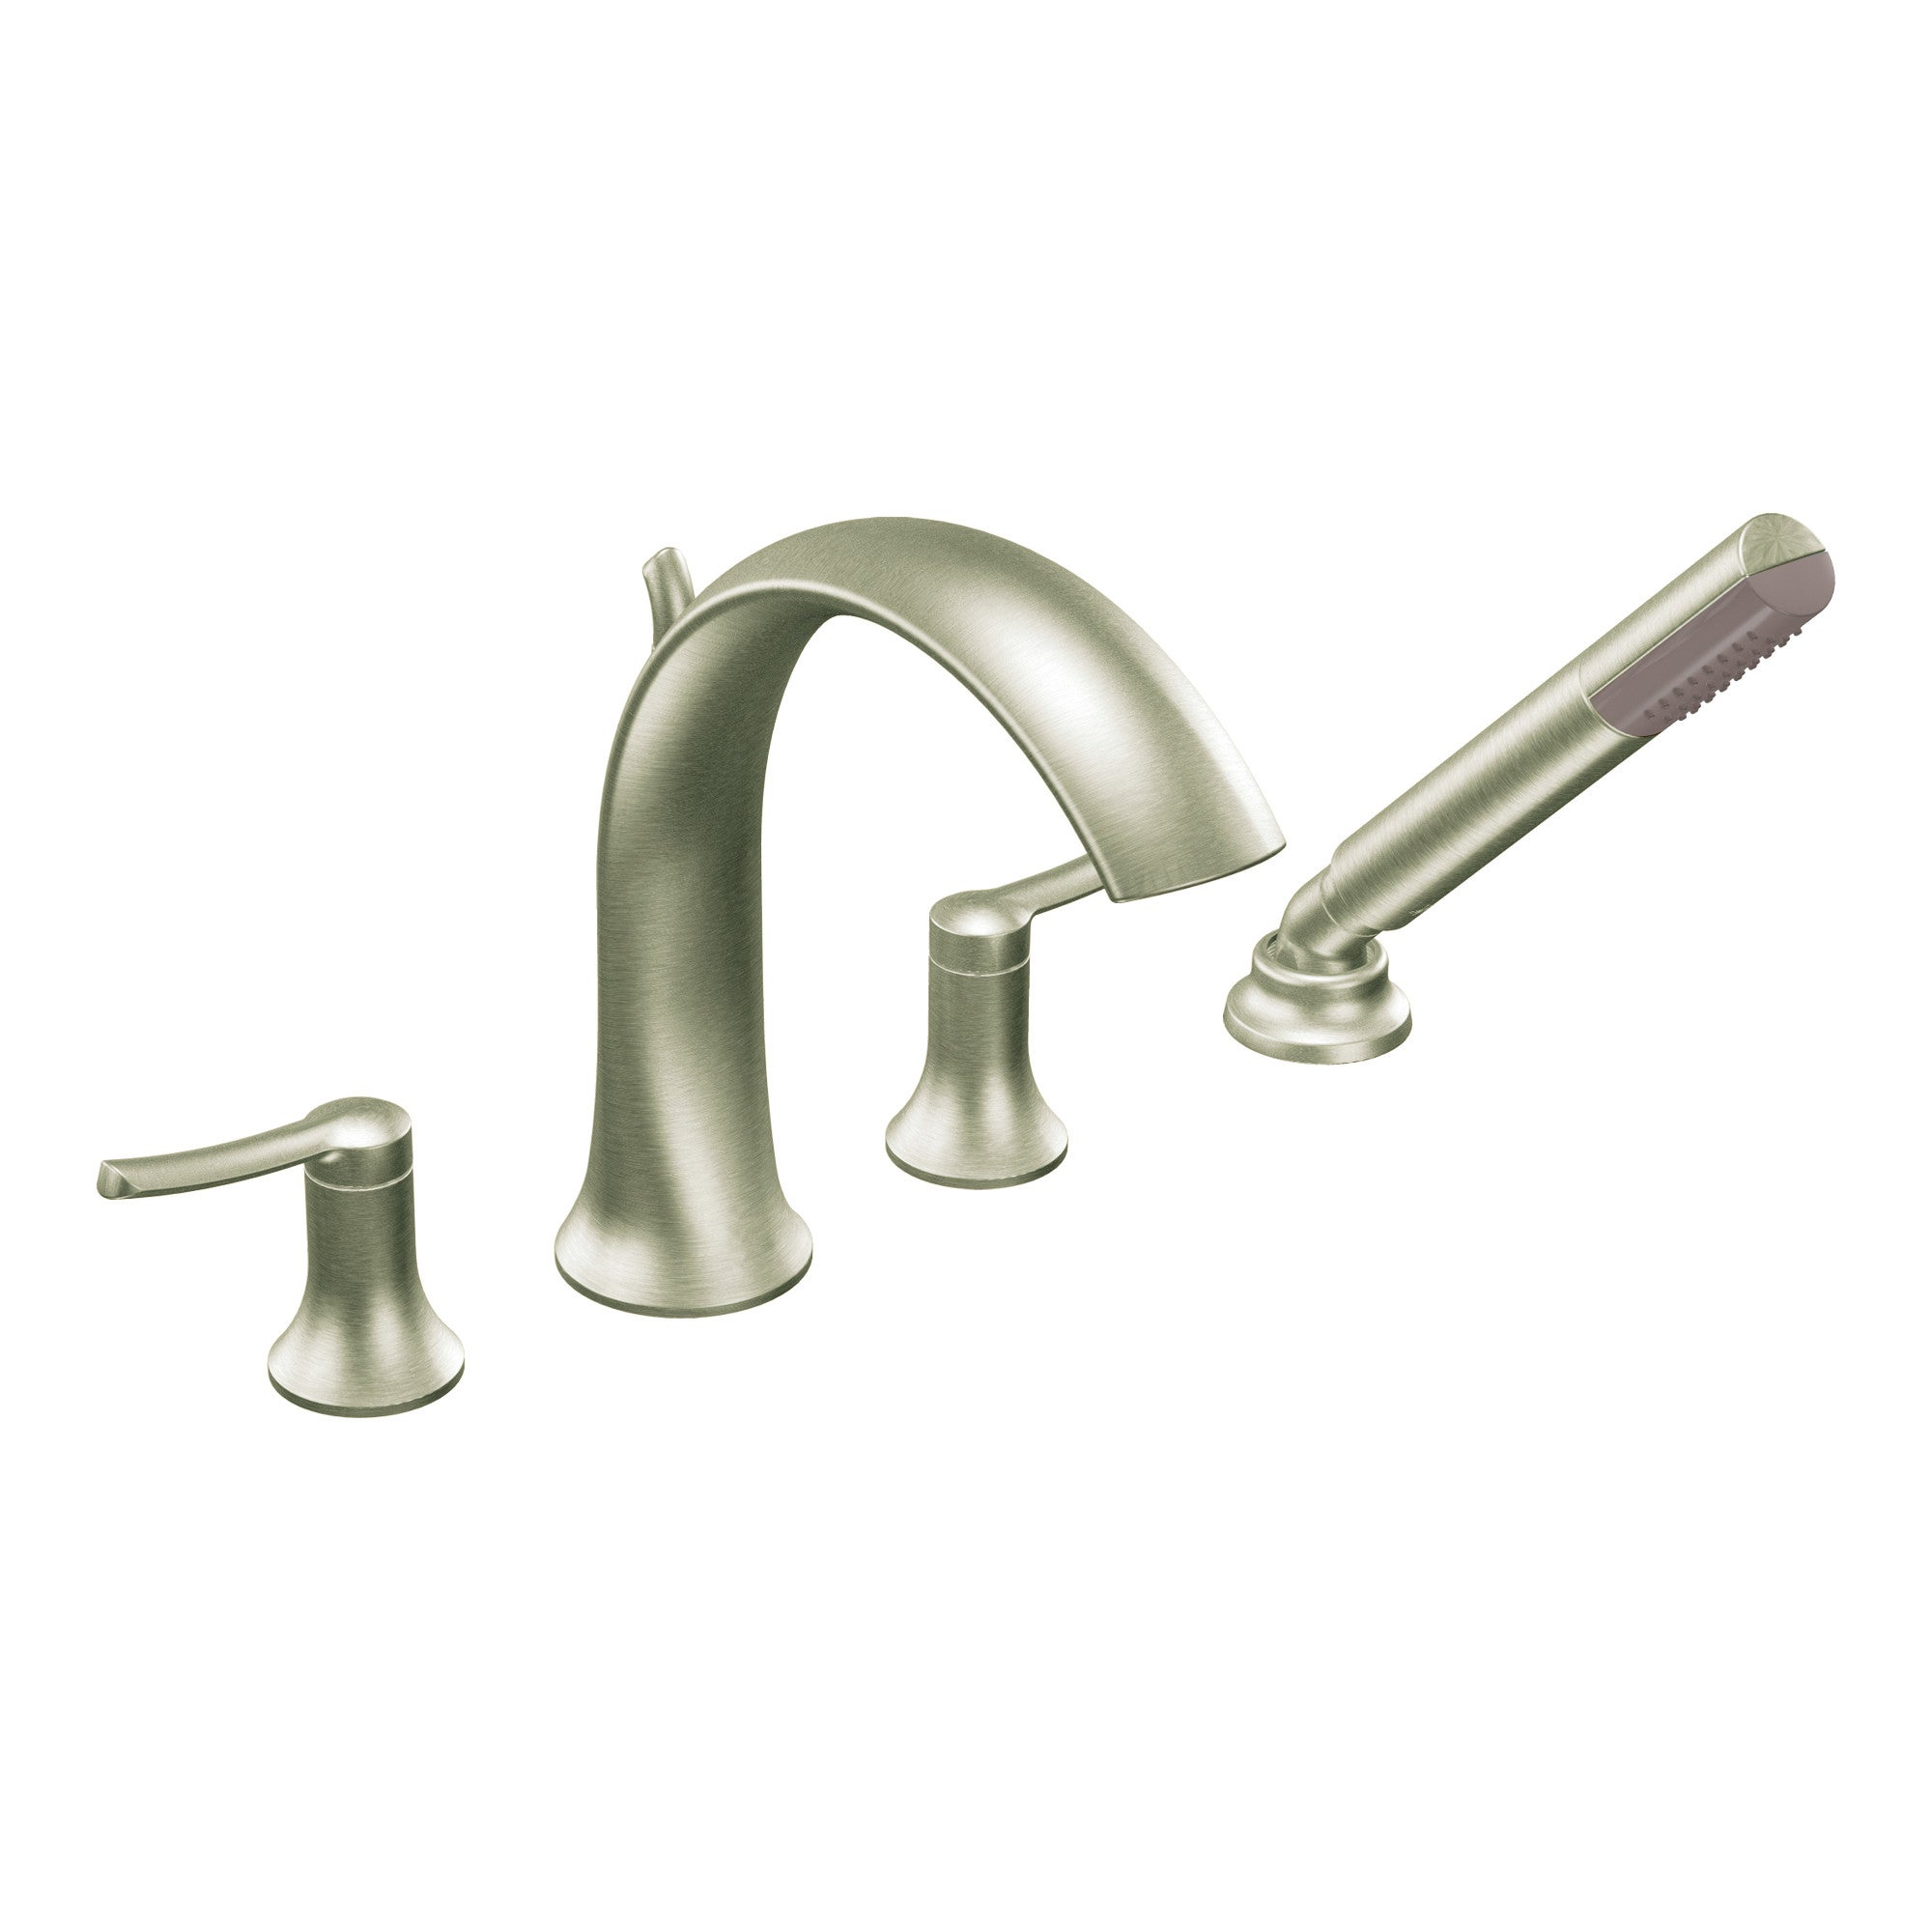 Moen Brushed Nickel Two-handle High Arc Faucet